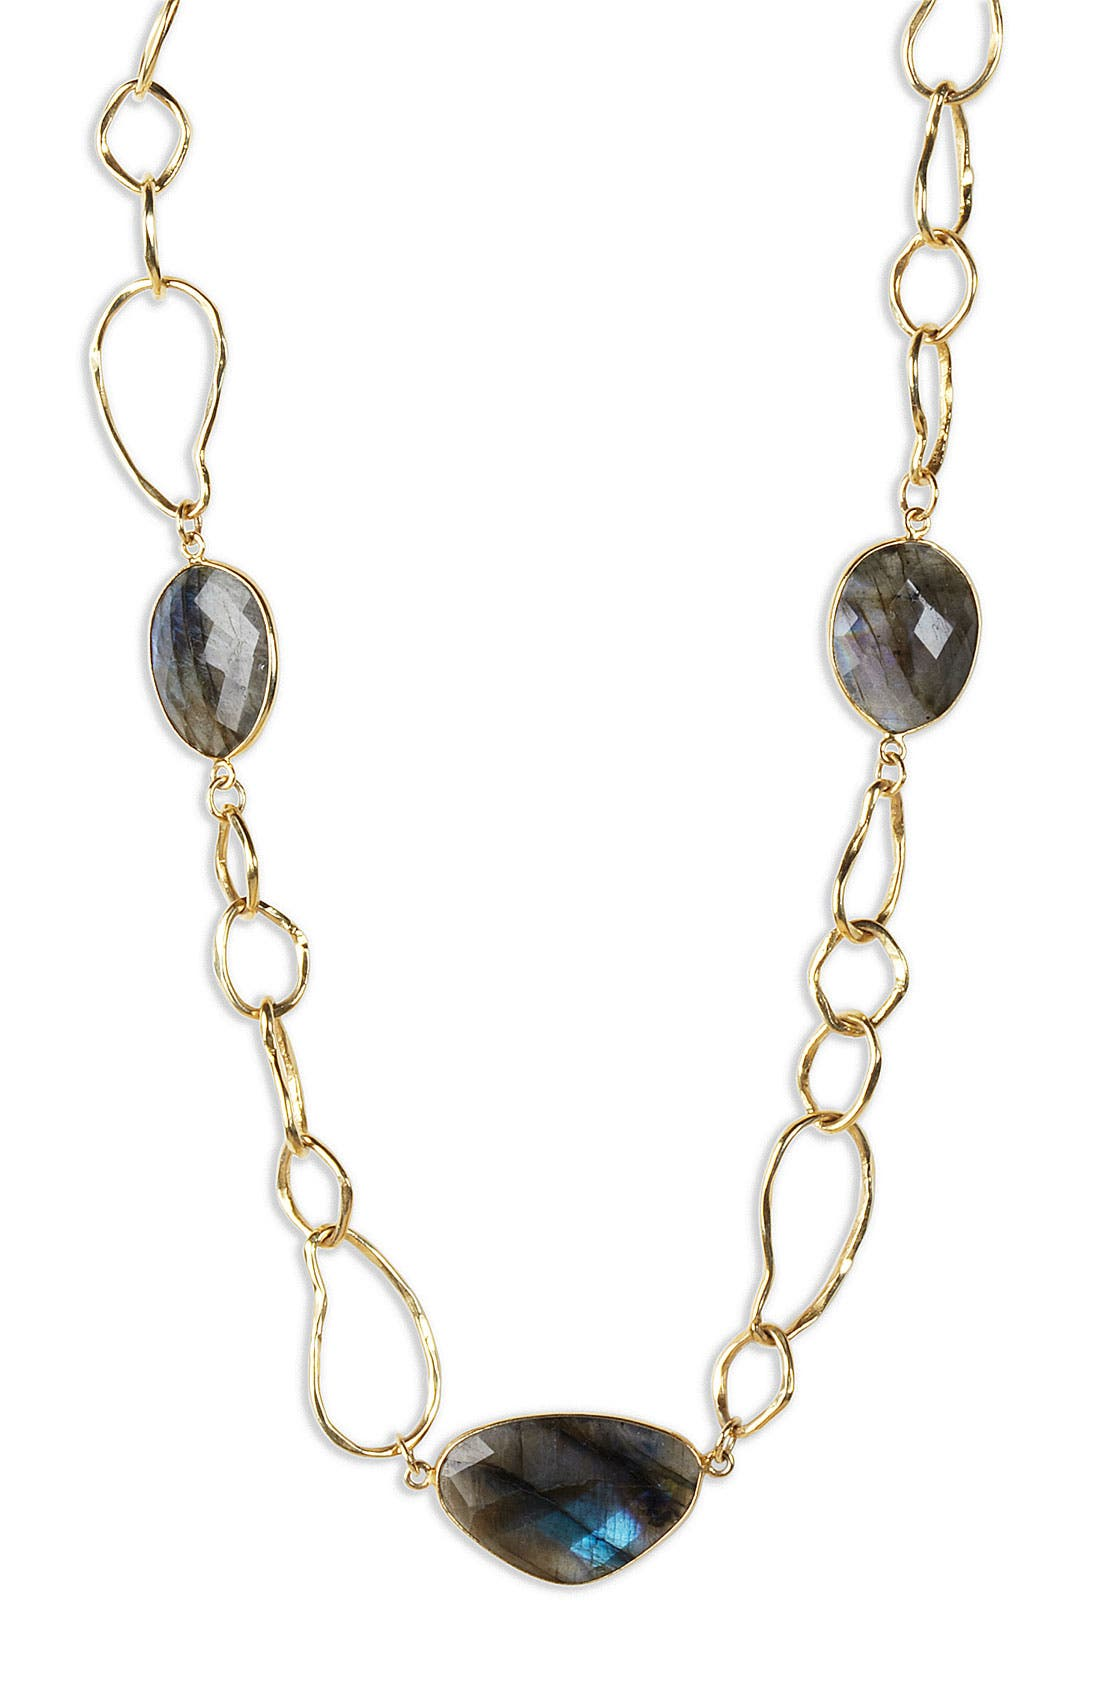 Alternate Image 1 Selected - Argento Vivo 'Waltzing Metal' Stone Station Link Necklace